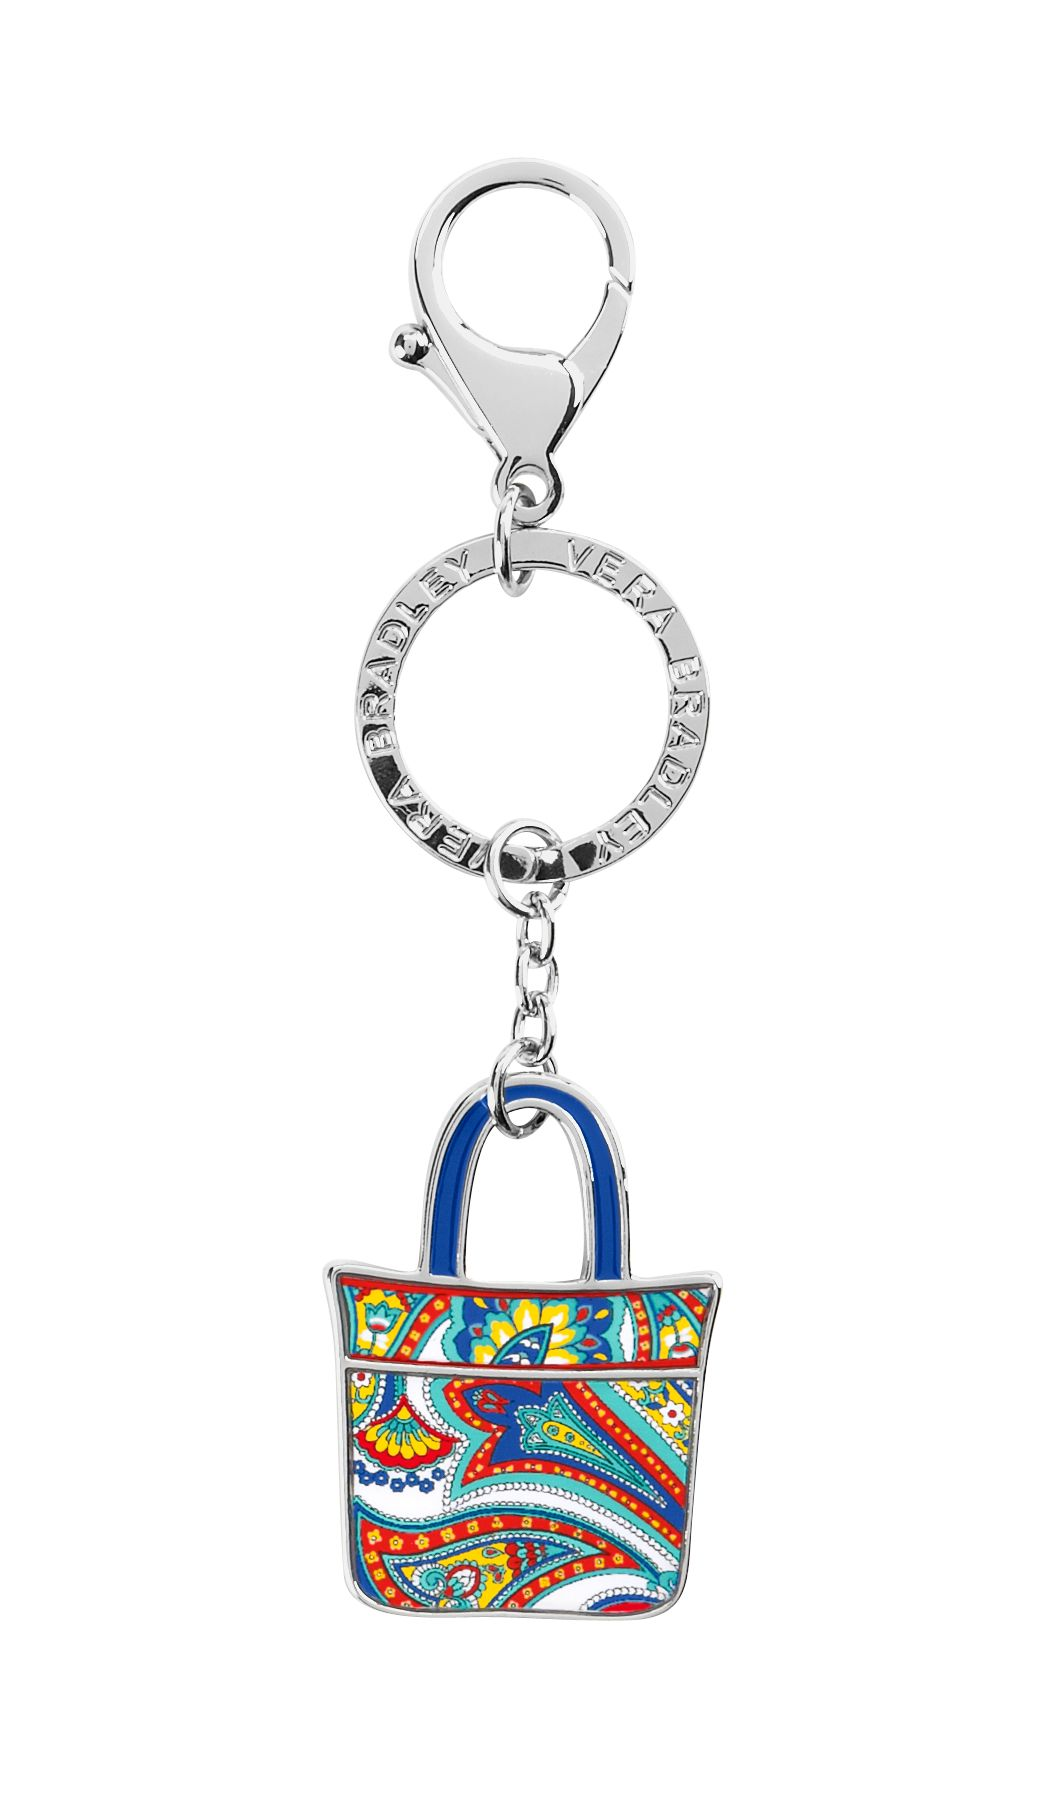 Vera Bradley Tote Around Keychain in Marina Paisley $ 15.40